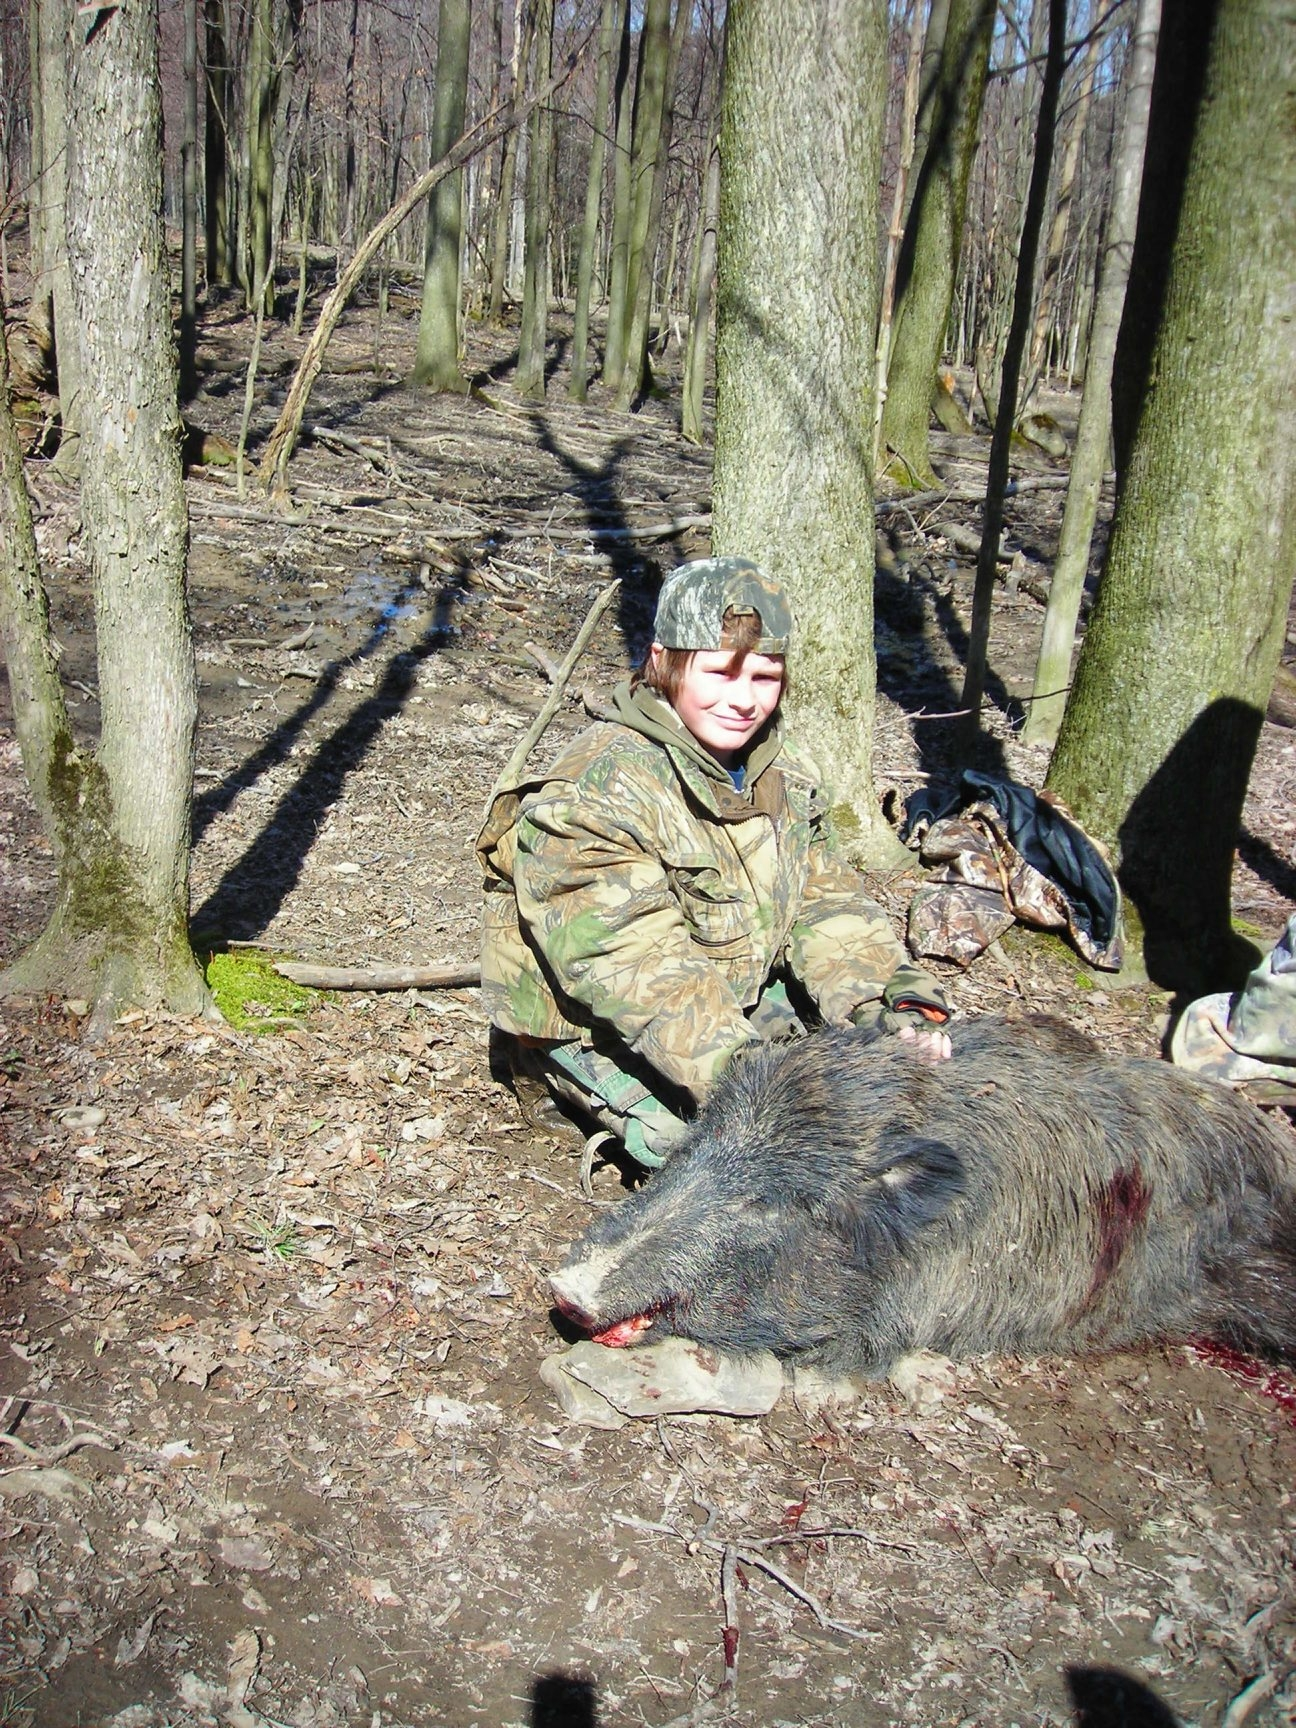 Brad Nichols of Warsaw bagged this boar at Creekside Outdoors in 2008, but New York State boar hunts will end in 2015.